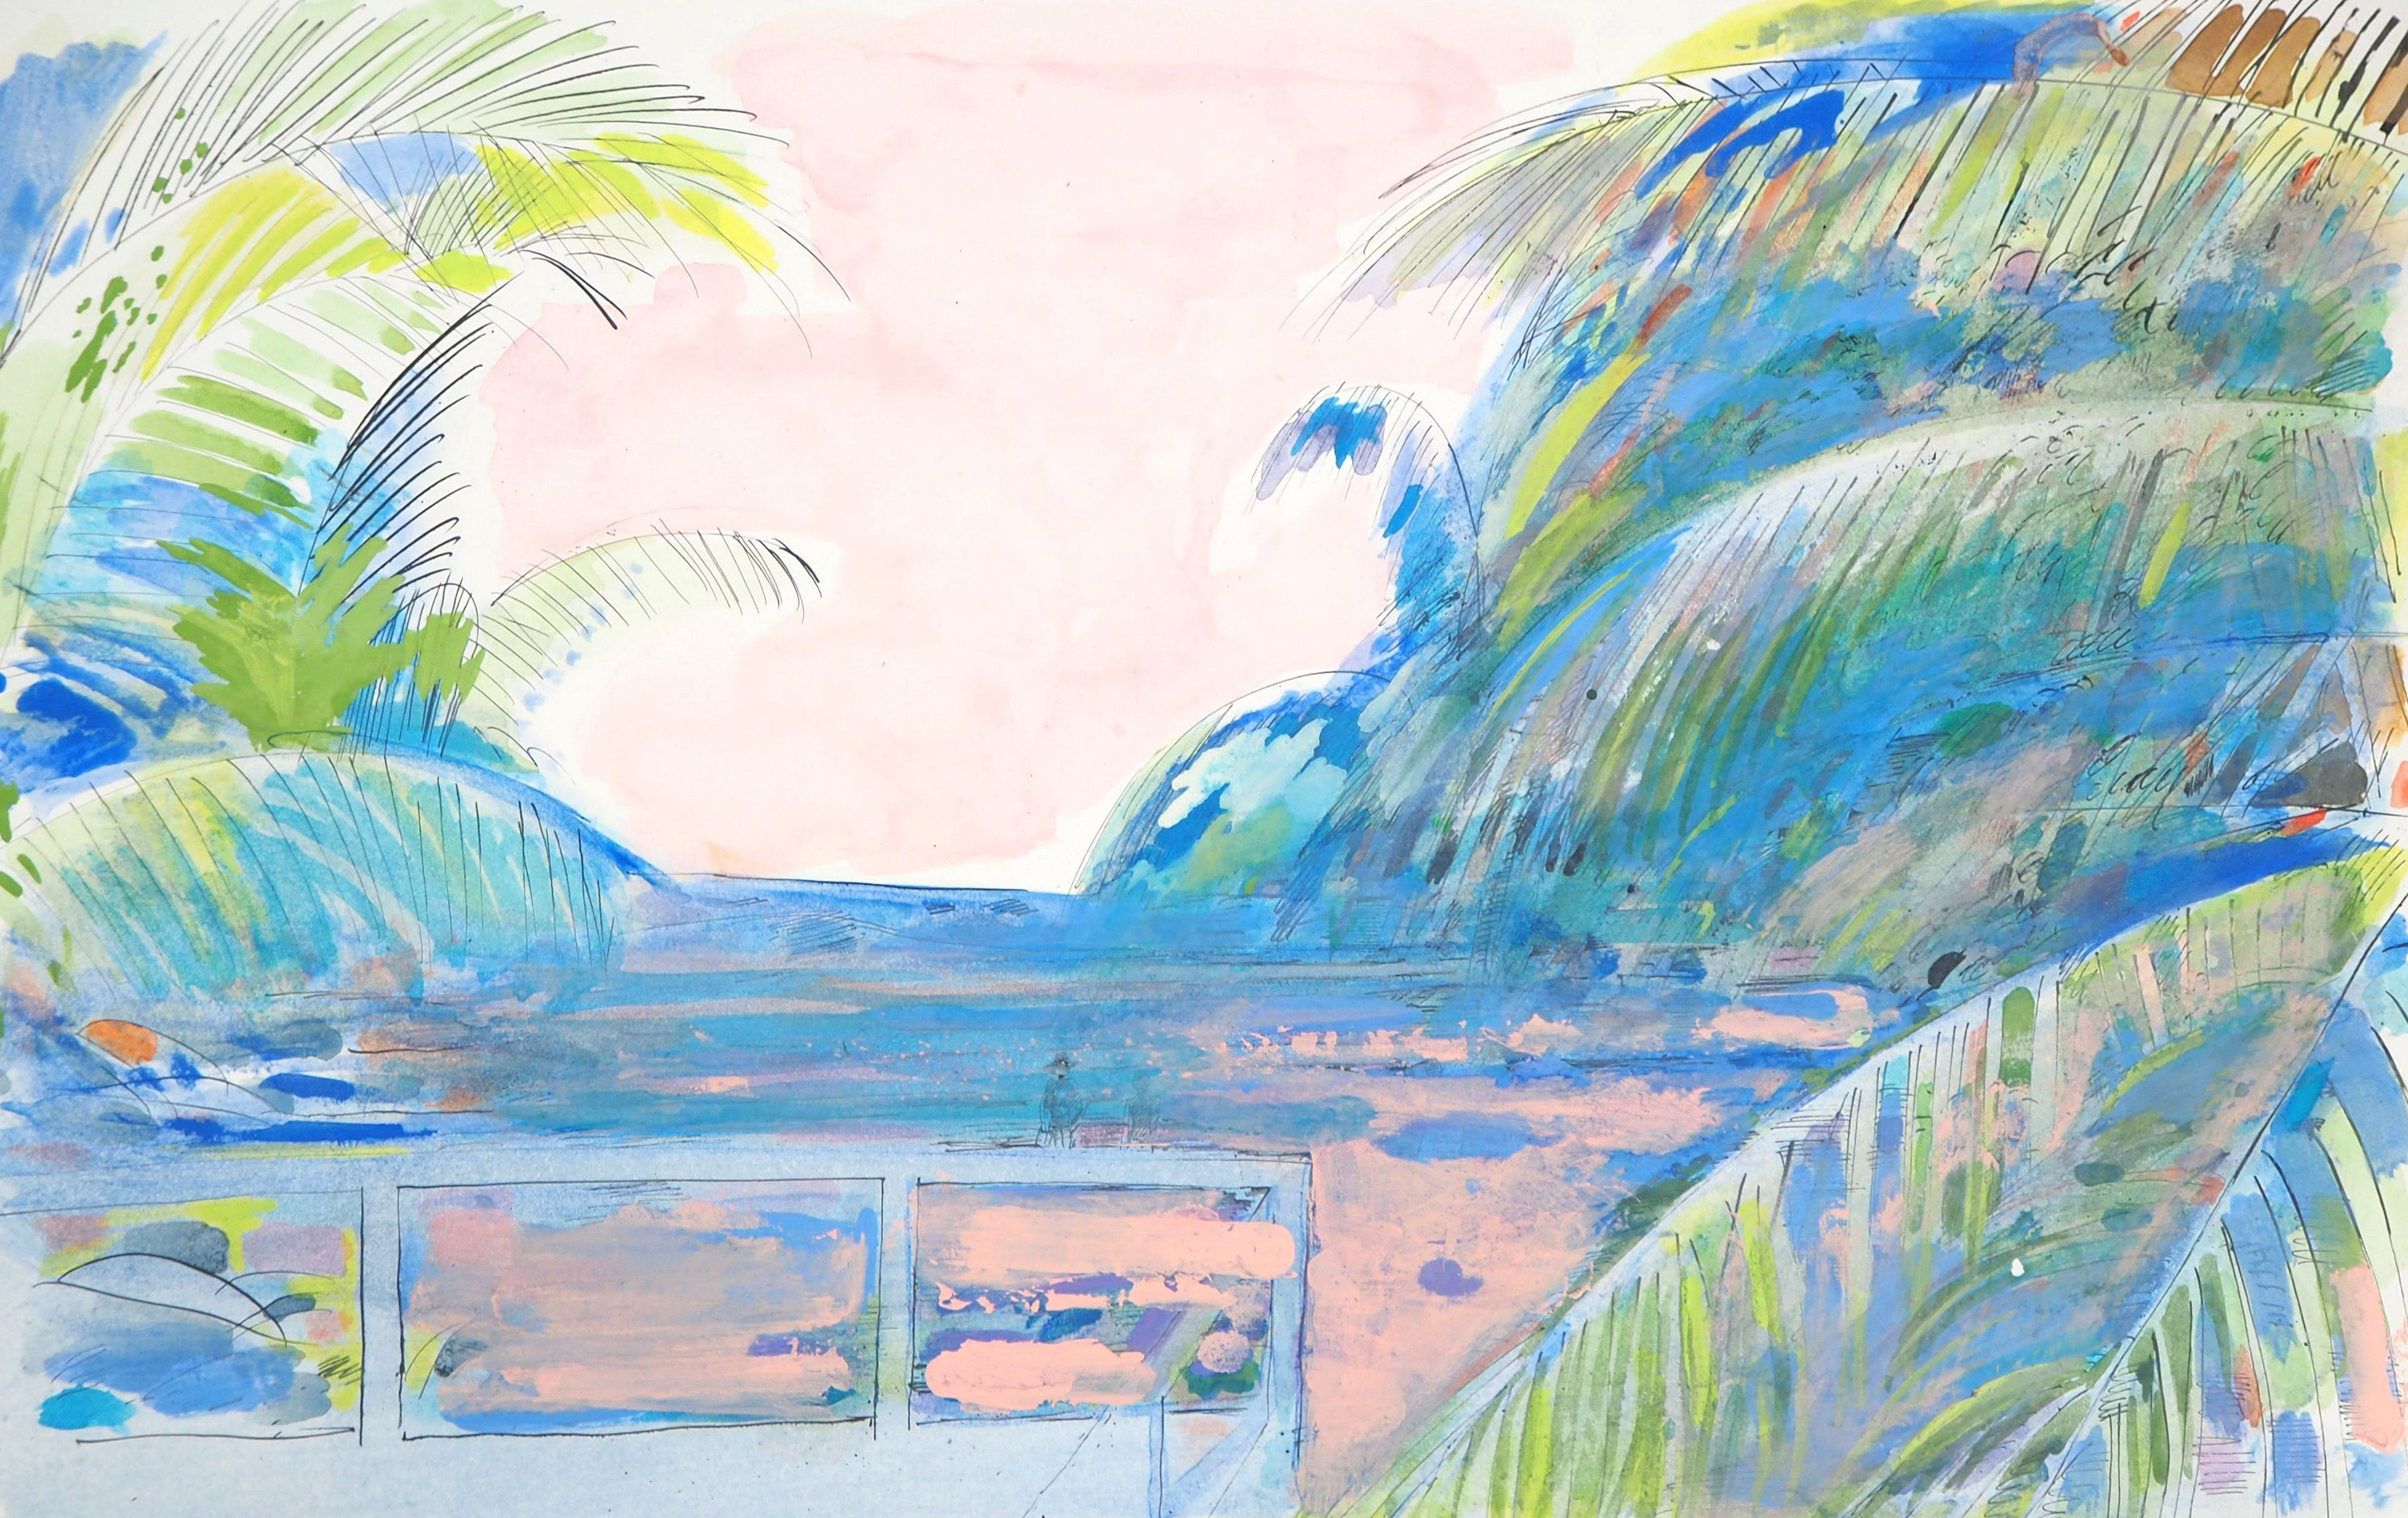 Pink Sky on the Beach - Original Handsigned Watercolor, Gouache and Ink Painting